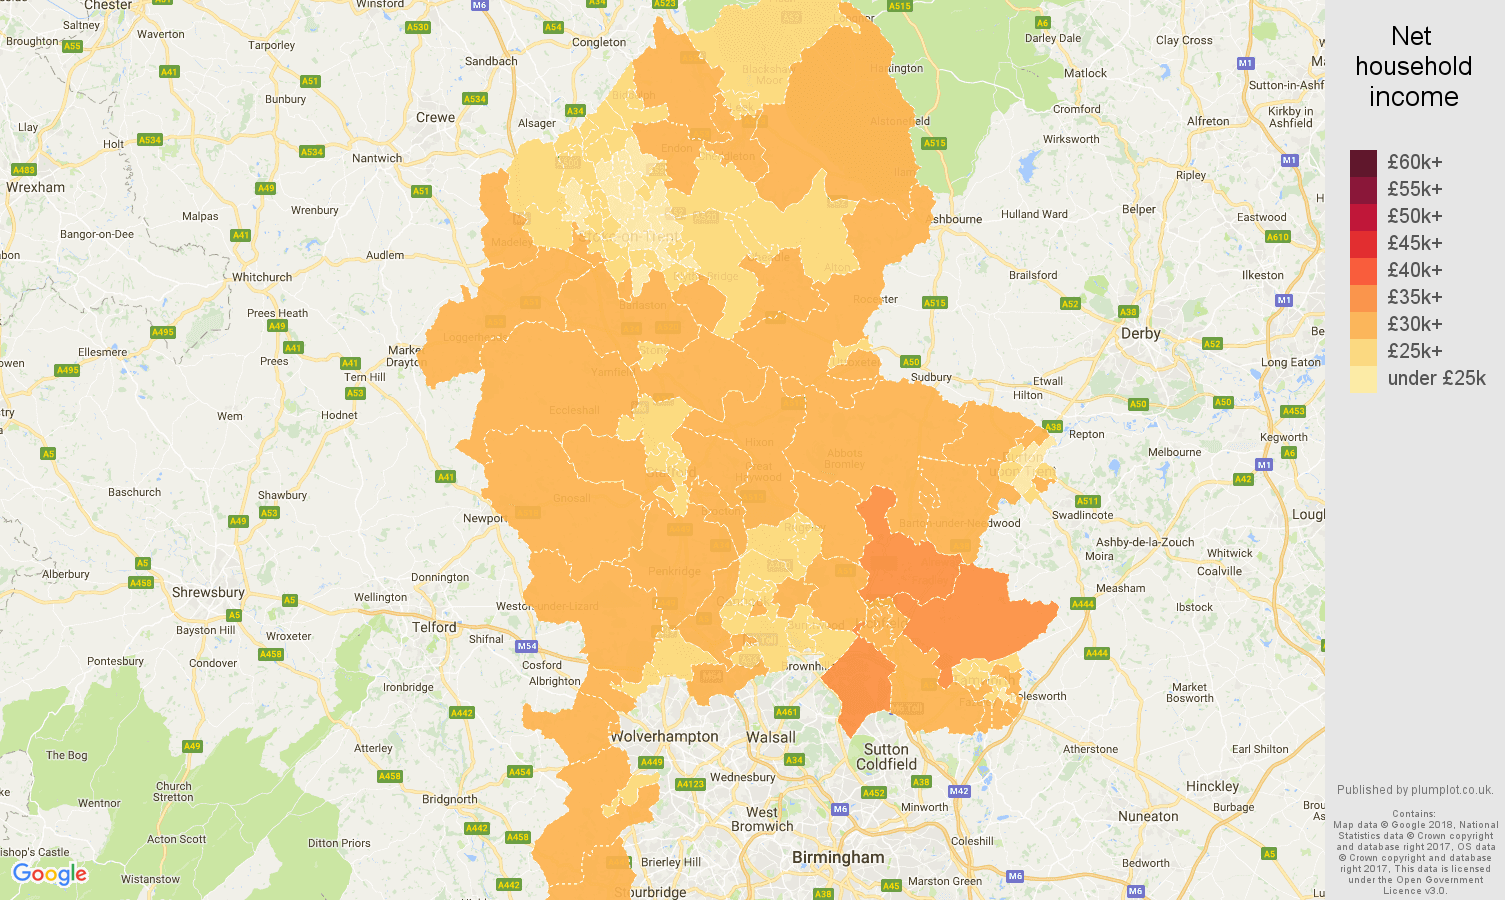 Staffordshire net household income map